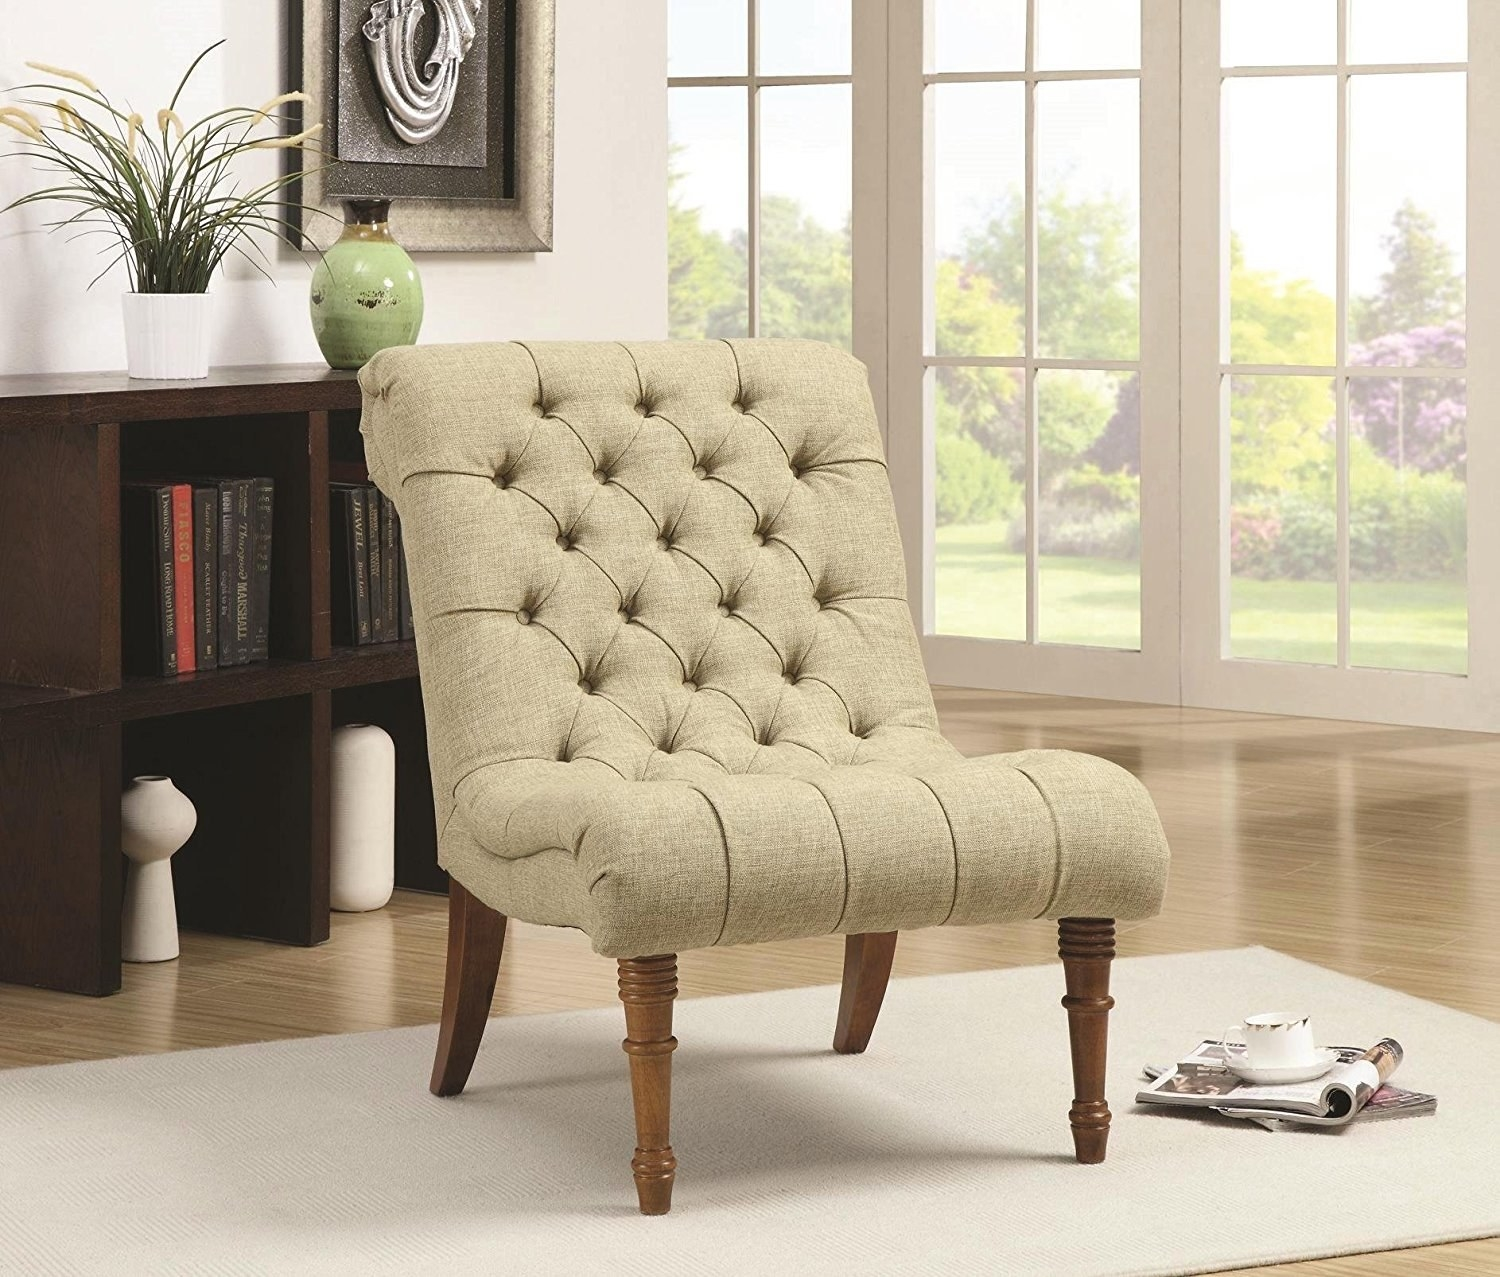 An Accent Chair For When You Need To Just Sit Down And Read A Good Book.